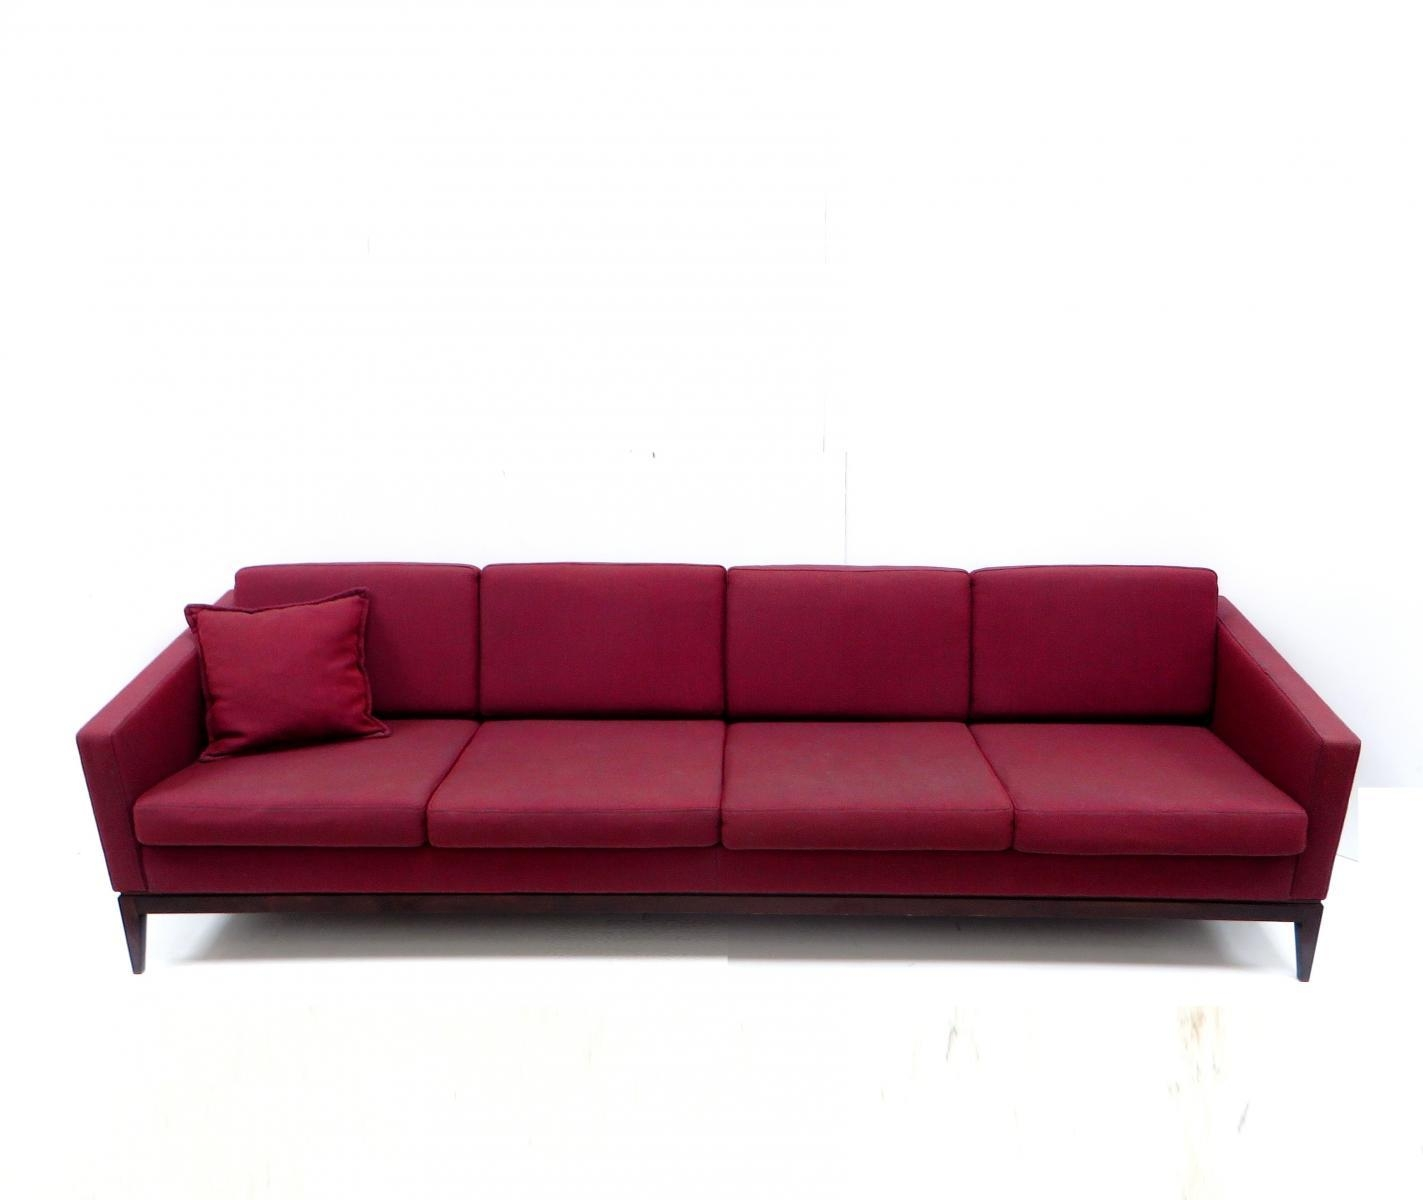 Large Vintage Burgundy Four Seater Sofa For Sale At Pamono Throughout Four Seater Sofas (Image 13 of 20)